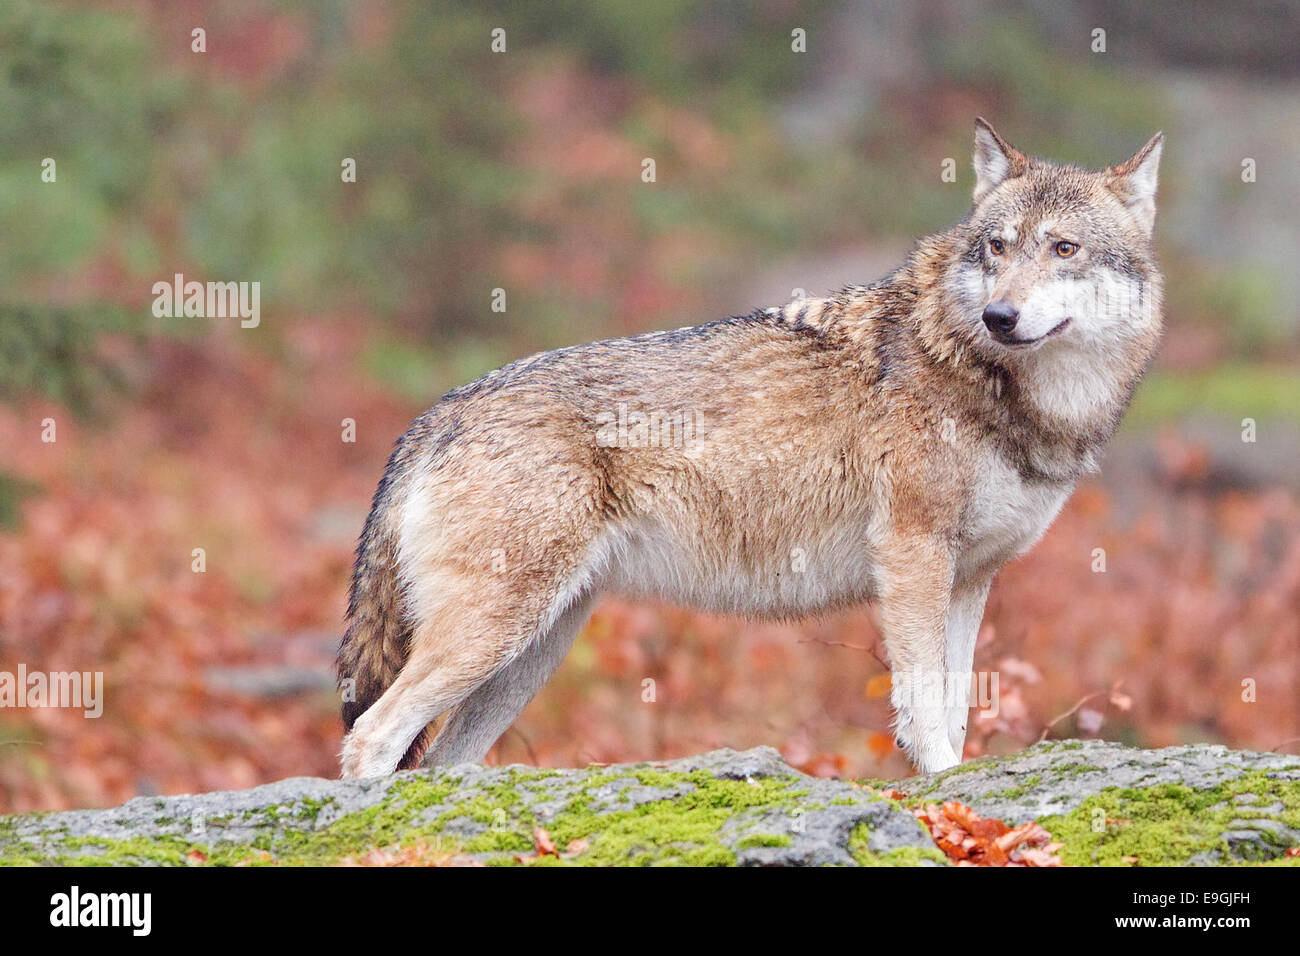 A captive female grey wolf stands on a rock in an autumnal forest, Bavarian Forest National Park, Germany - Stock Image